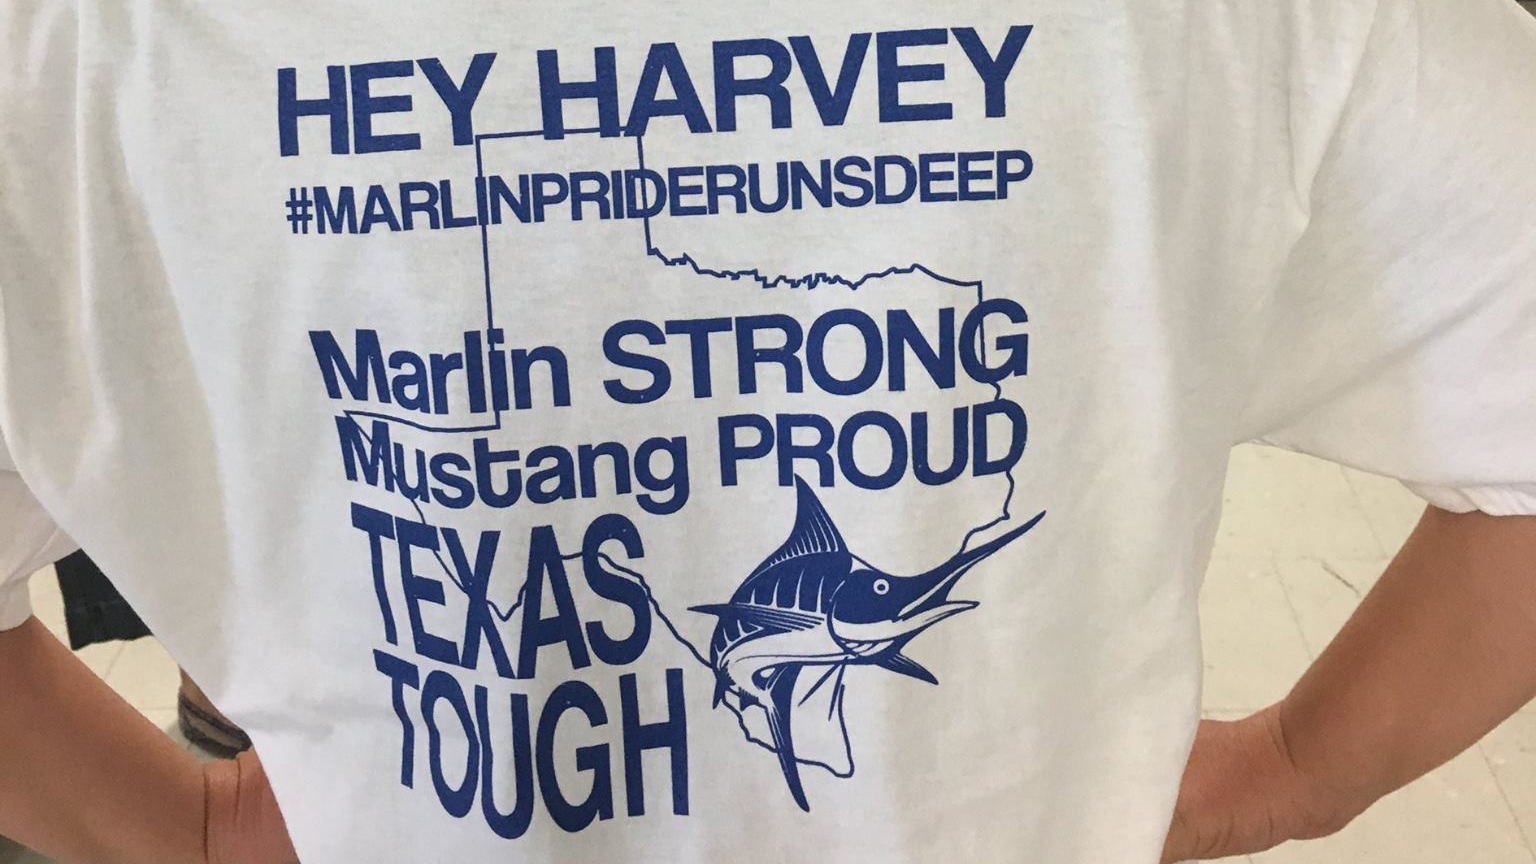 Panhandle districts reach across Texas to lift morale after Harvey